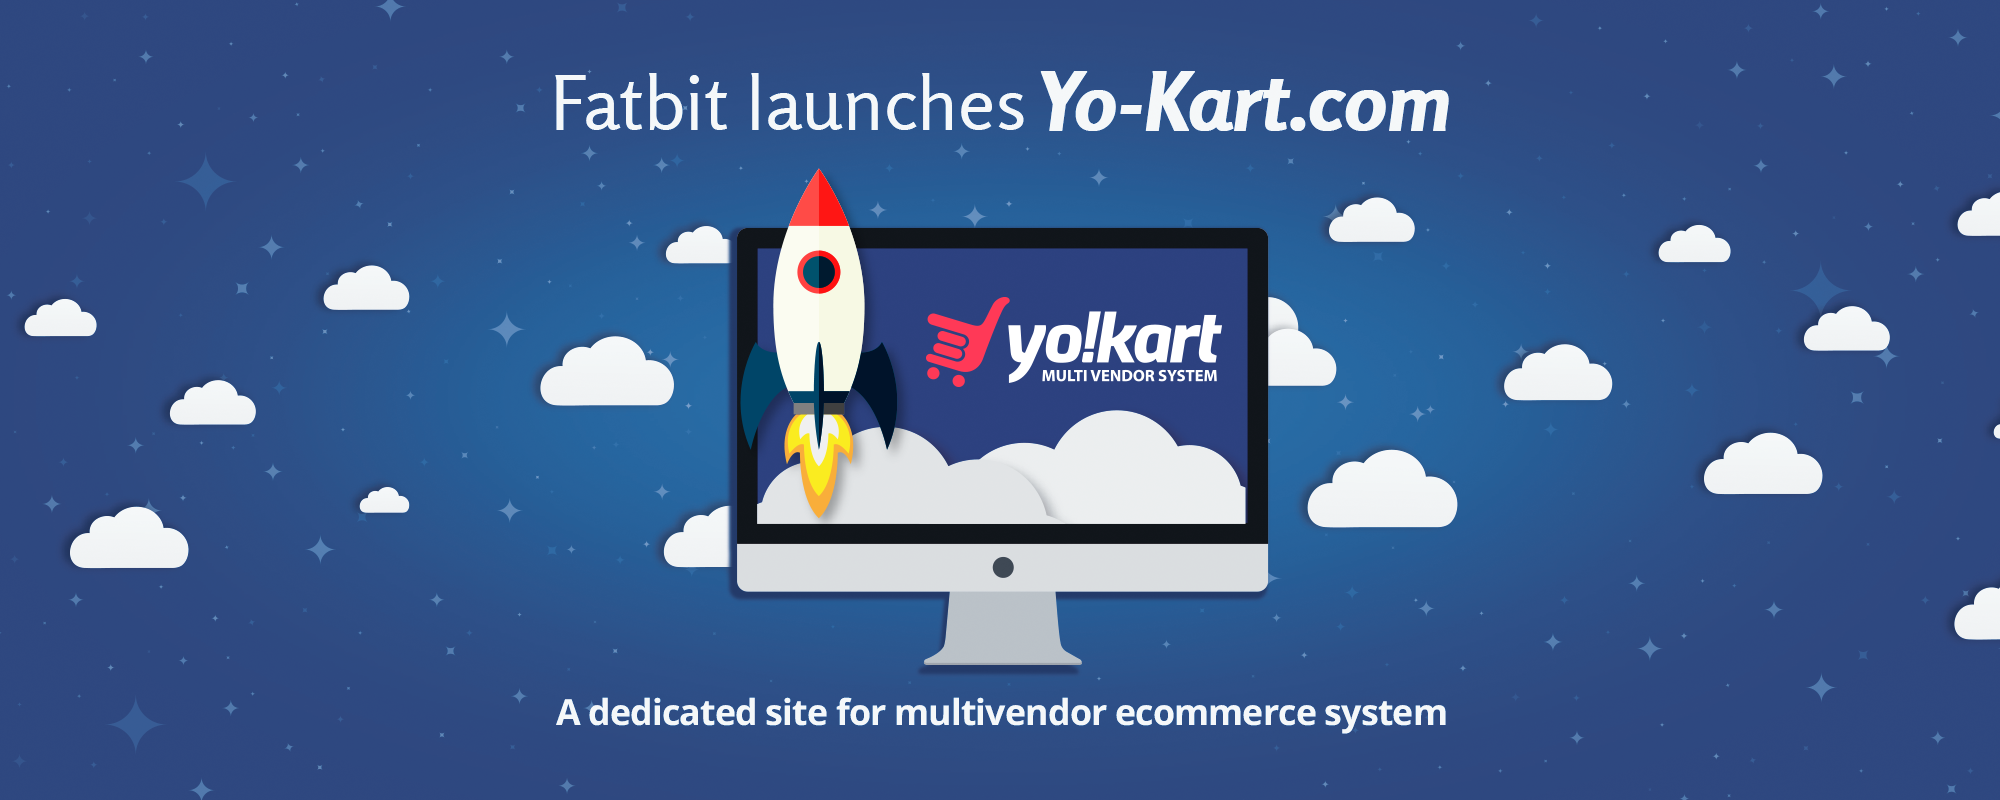 FATbit Launches Yo-Kart.com – Dedicated Website for Its Multivendor Ecommerce System